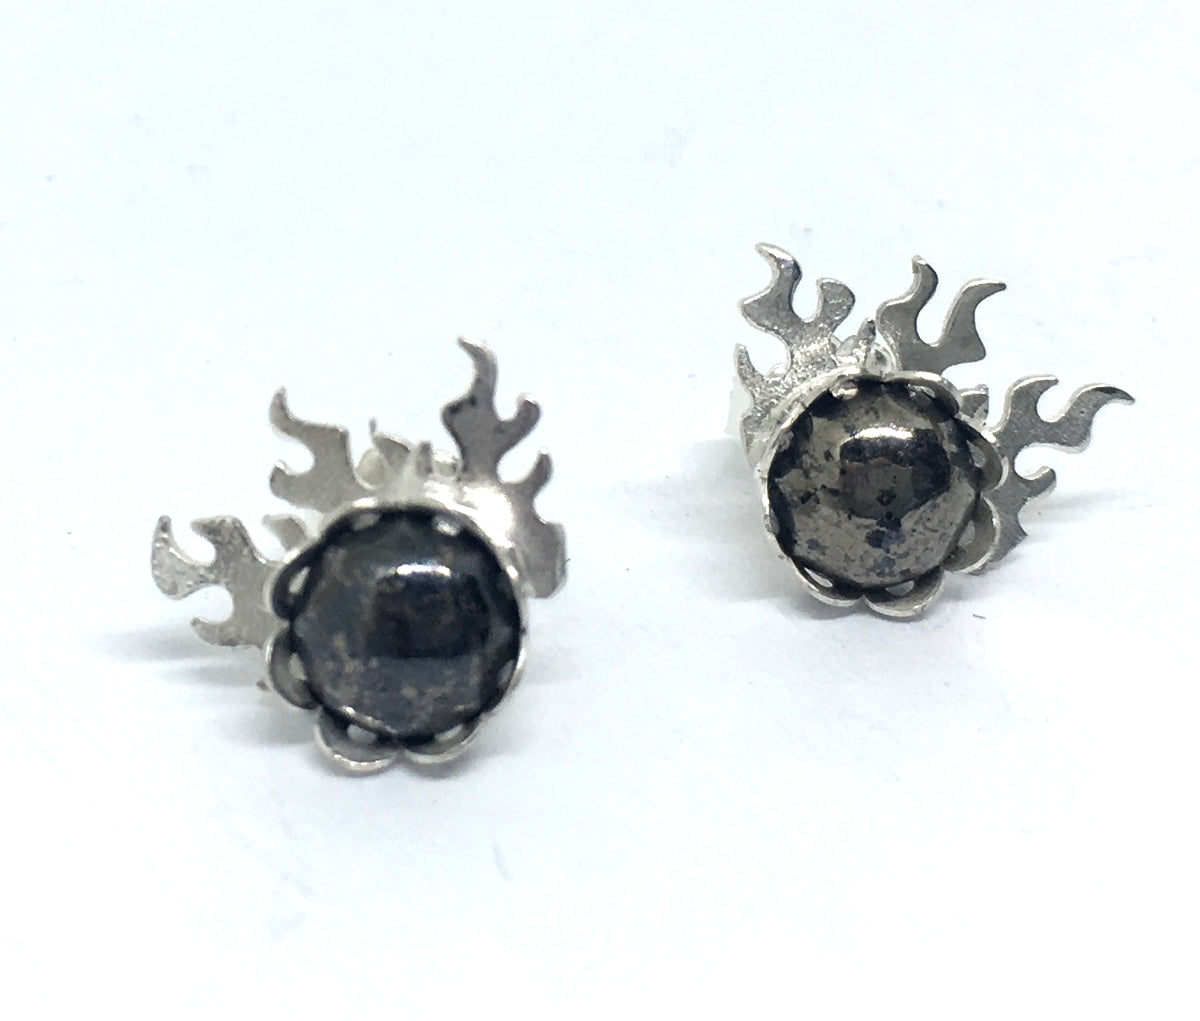 fire earrings with pyrite gemstones in sterling silver